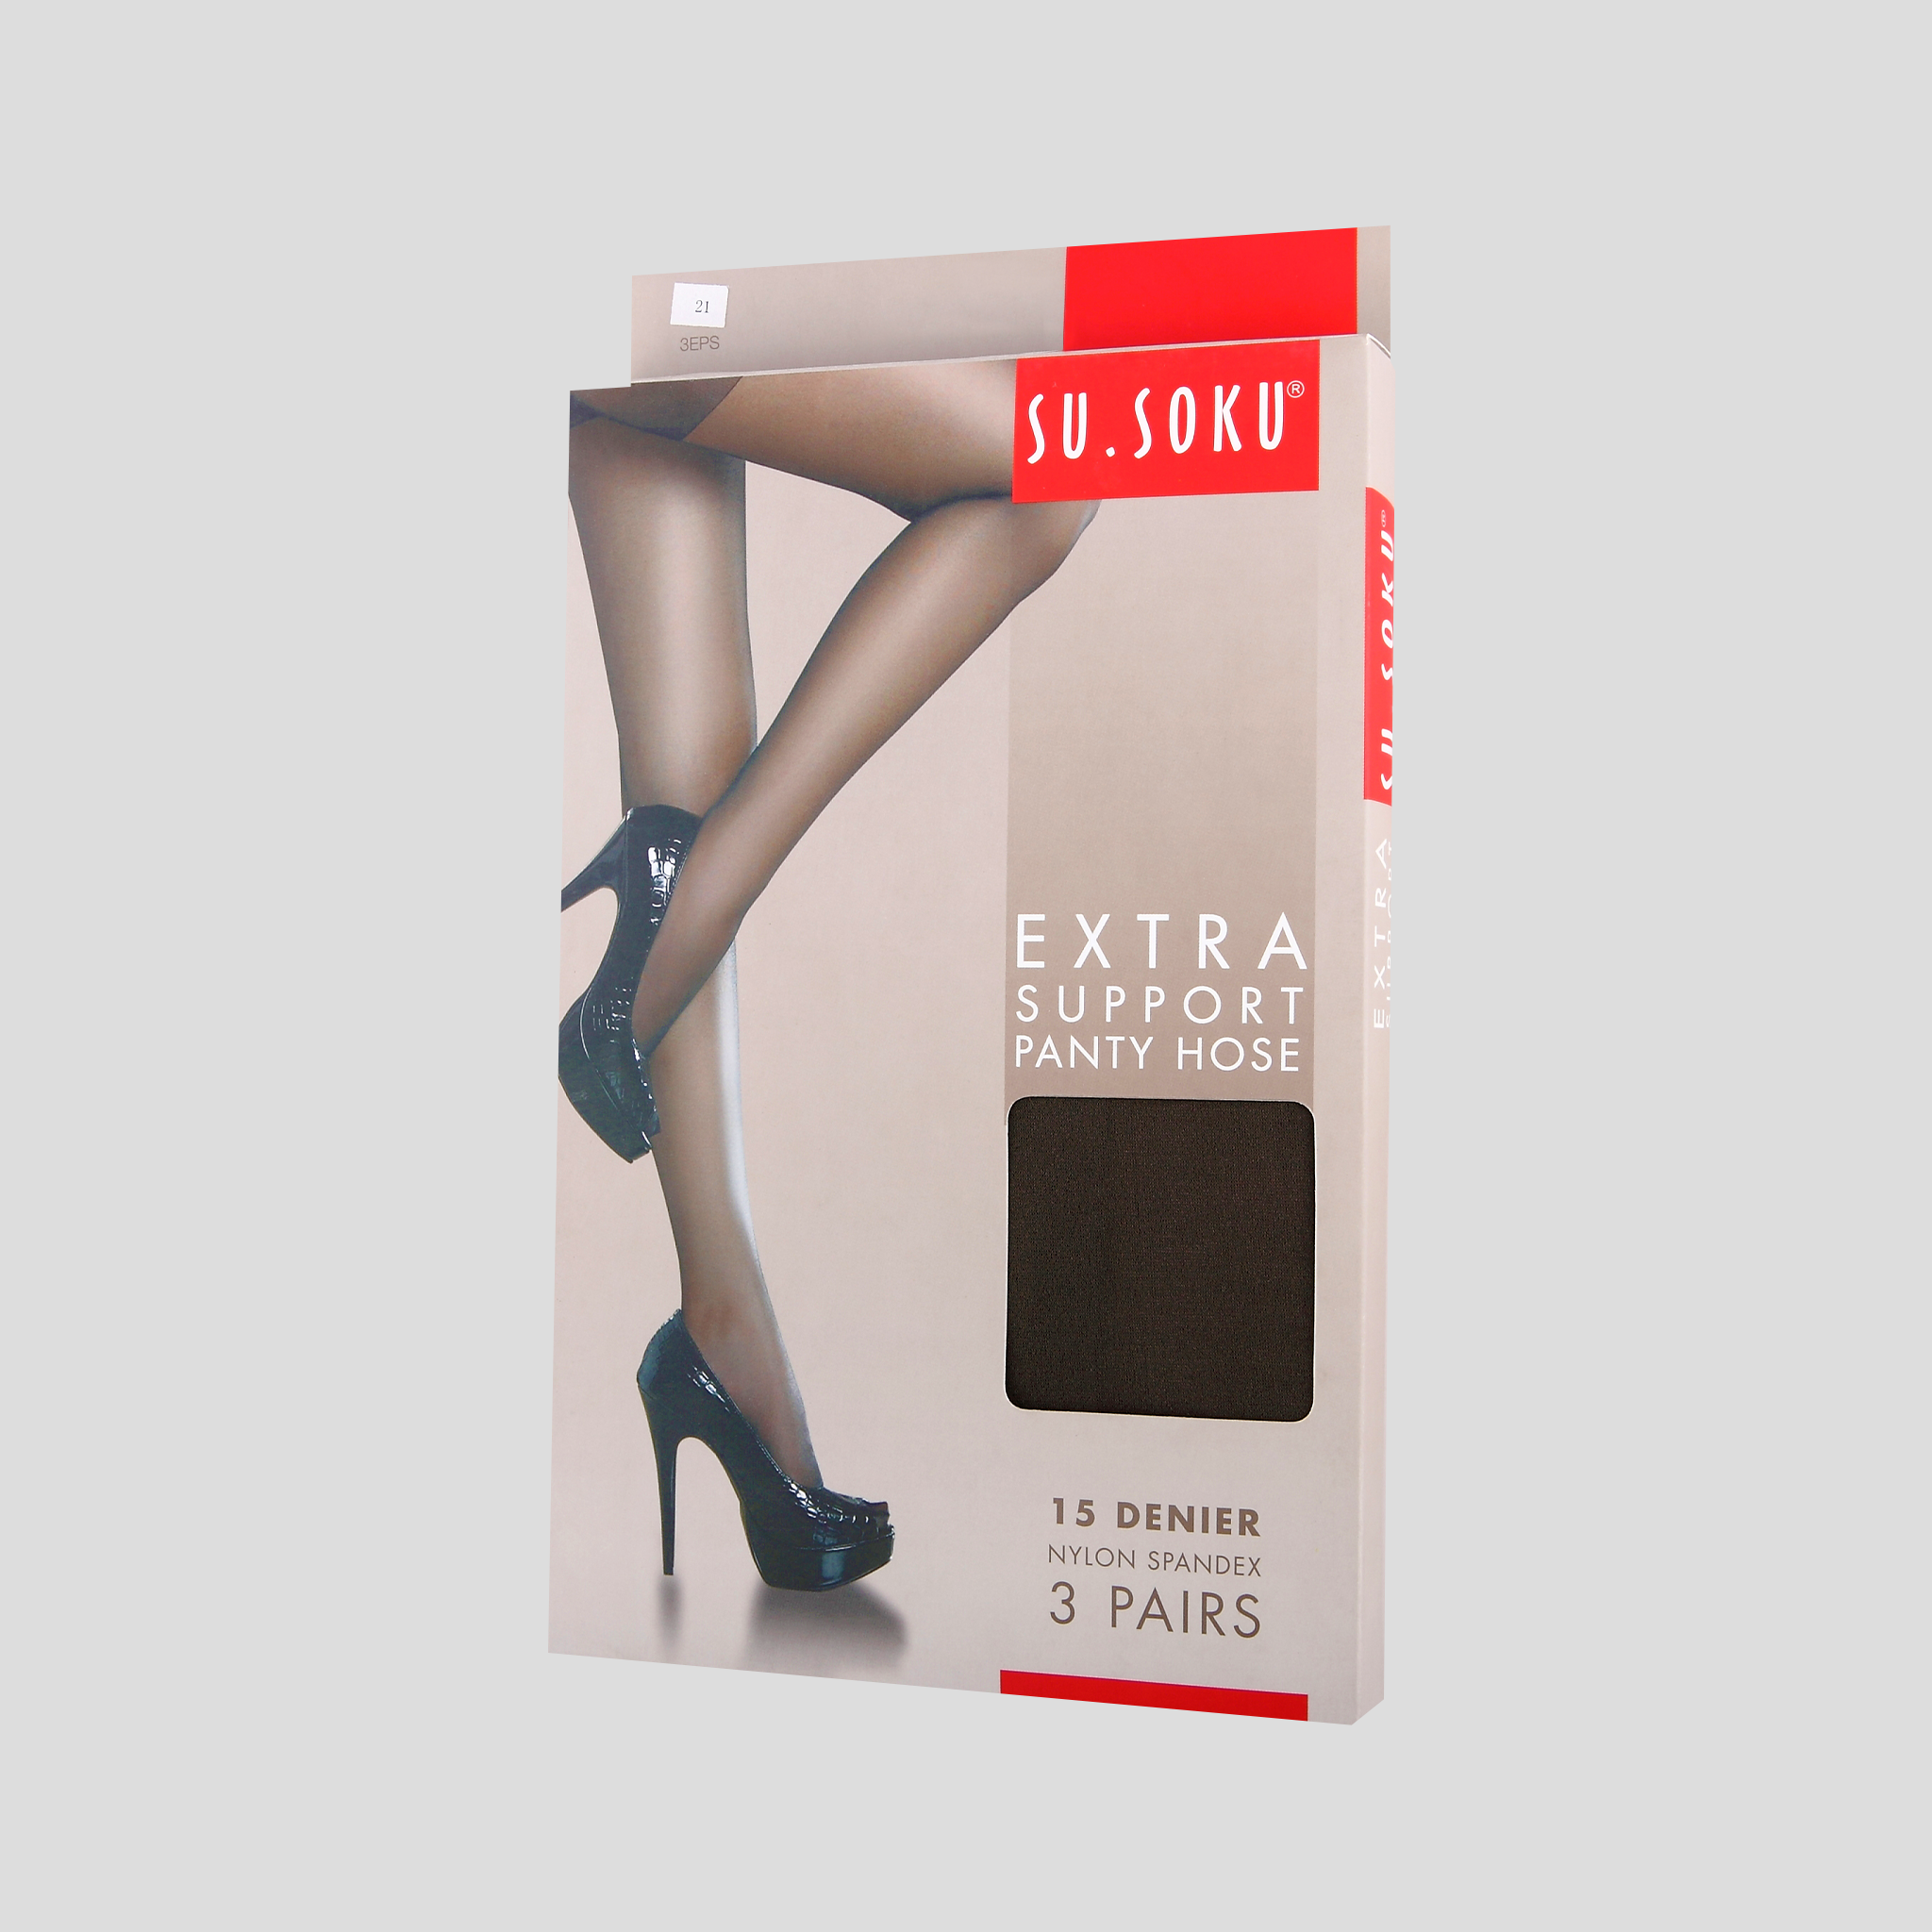 Extra Support Panty Hose Packaging